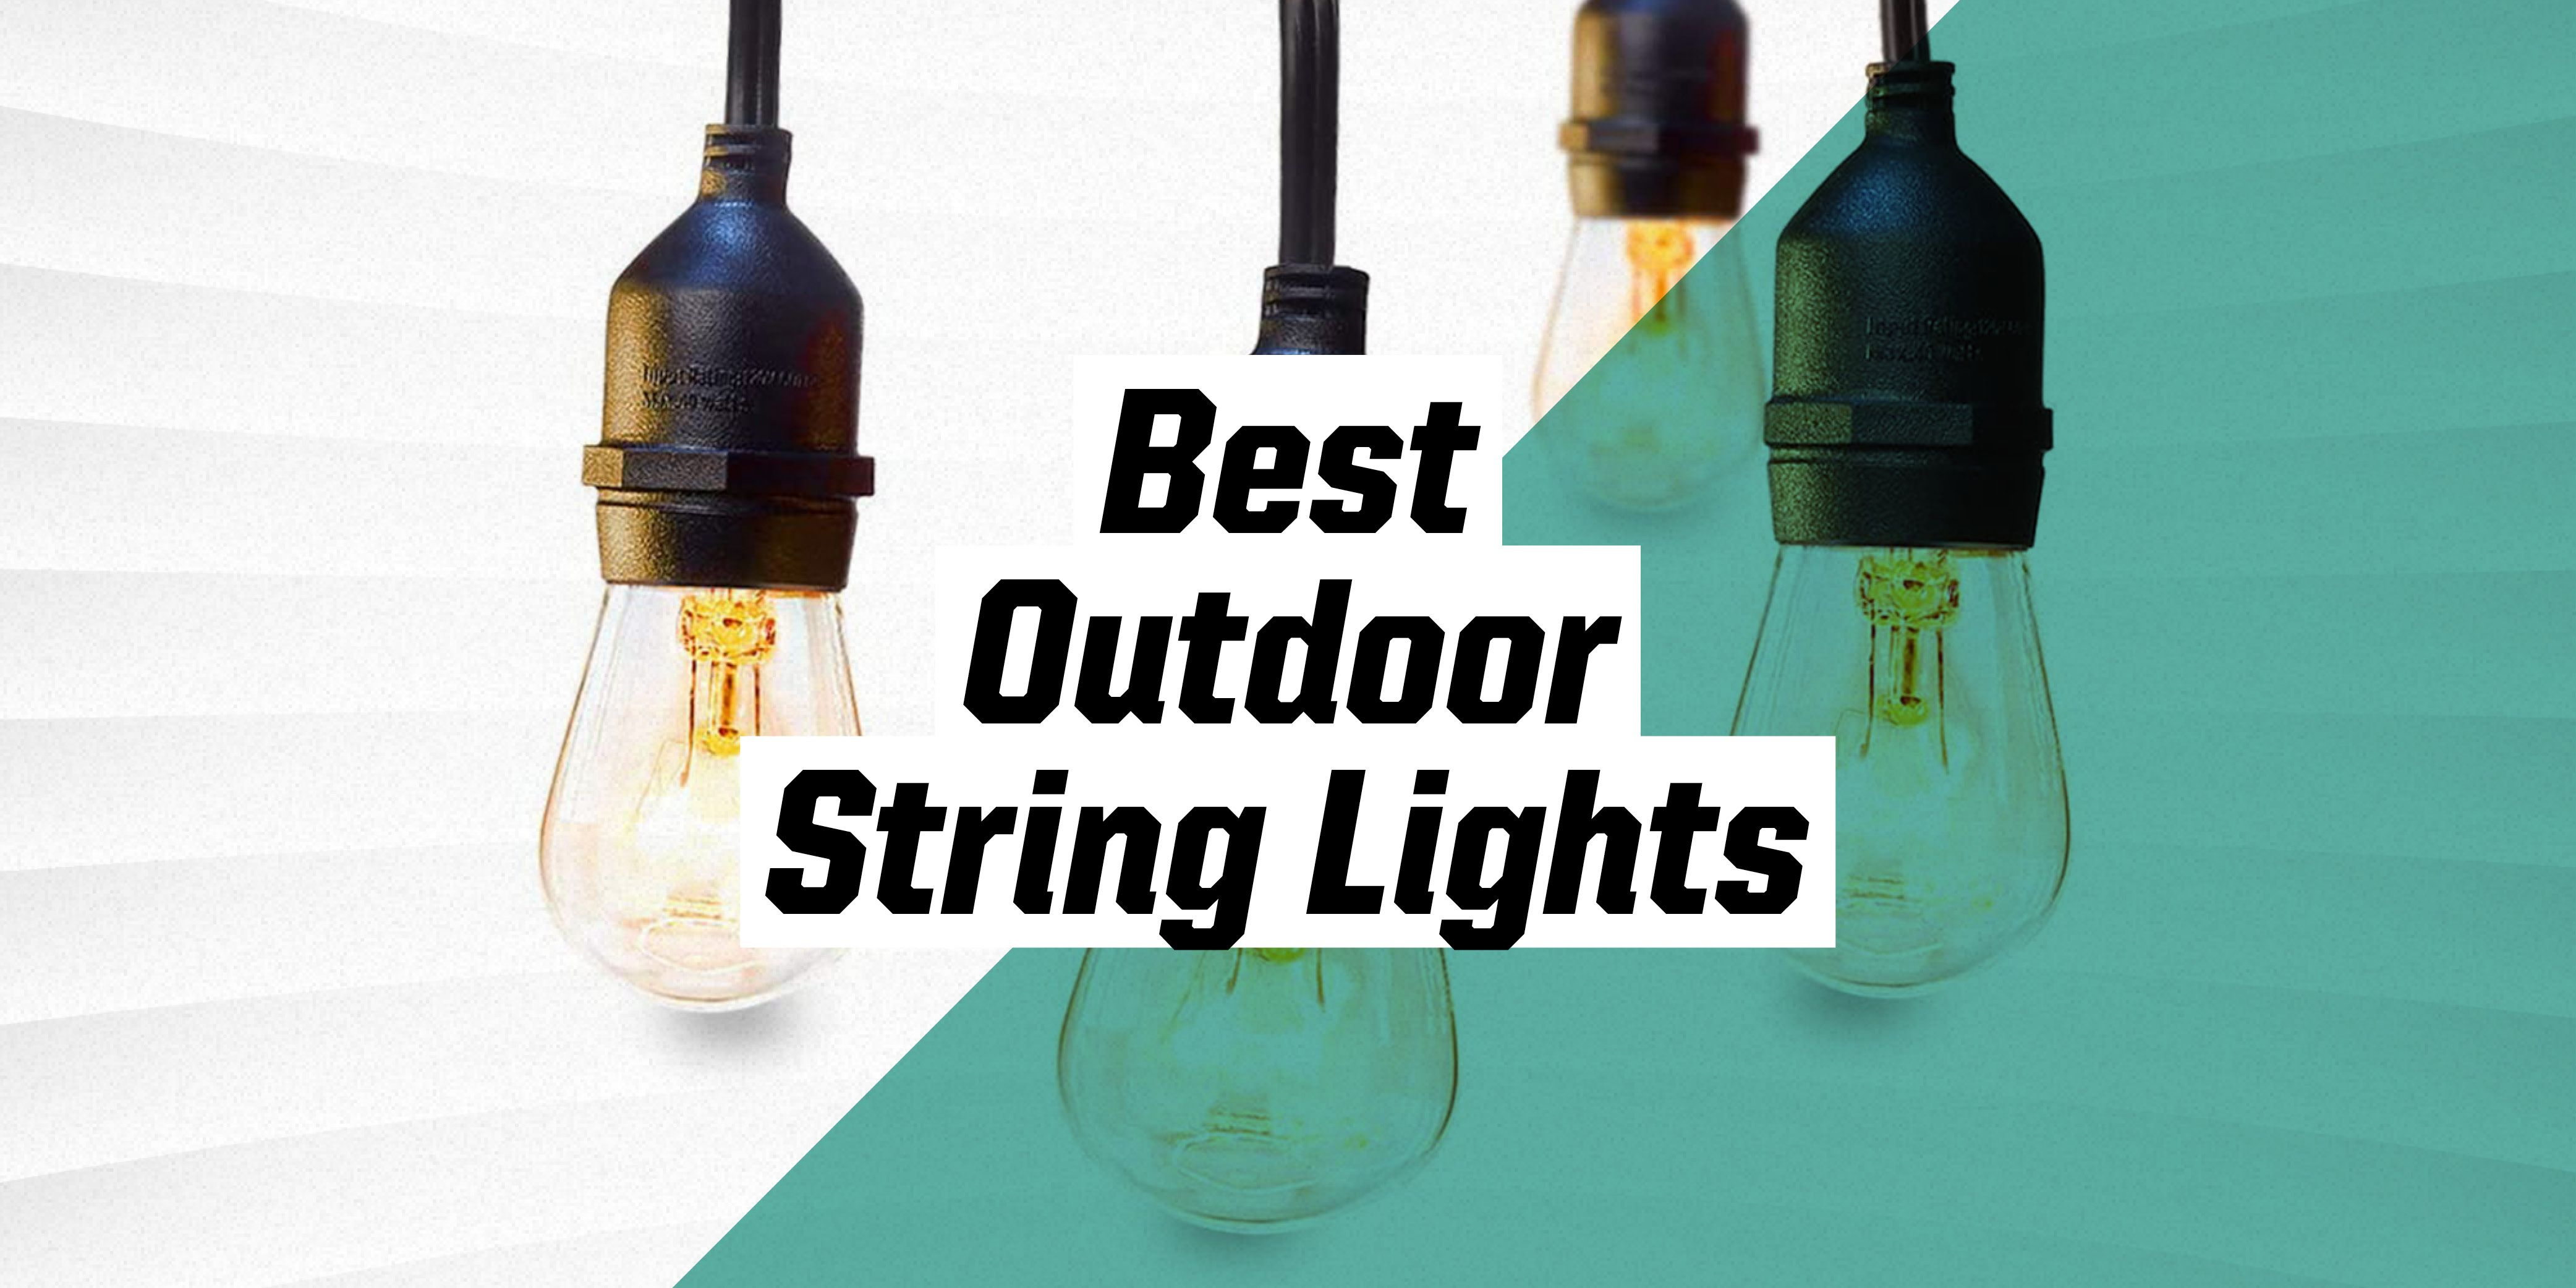 the best outdoor string lights for adding festive vibes to your backyard